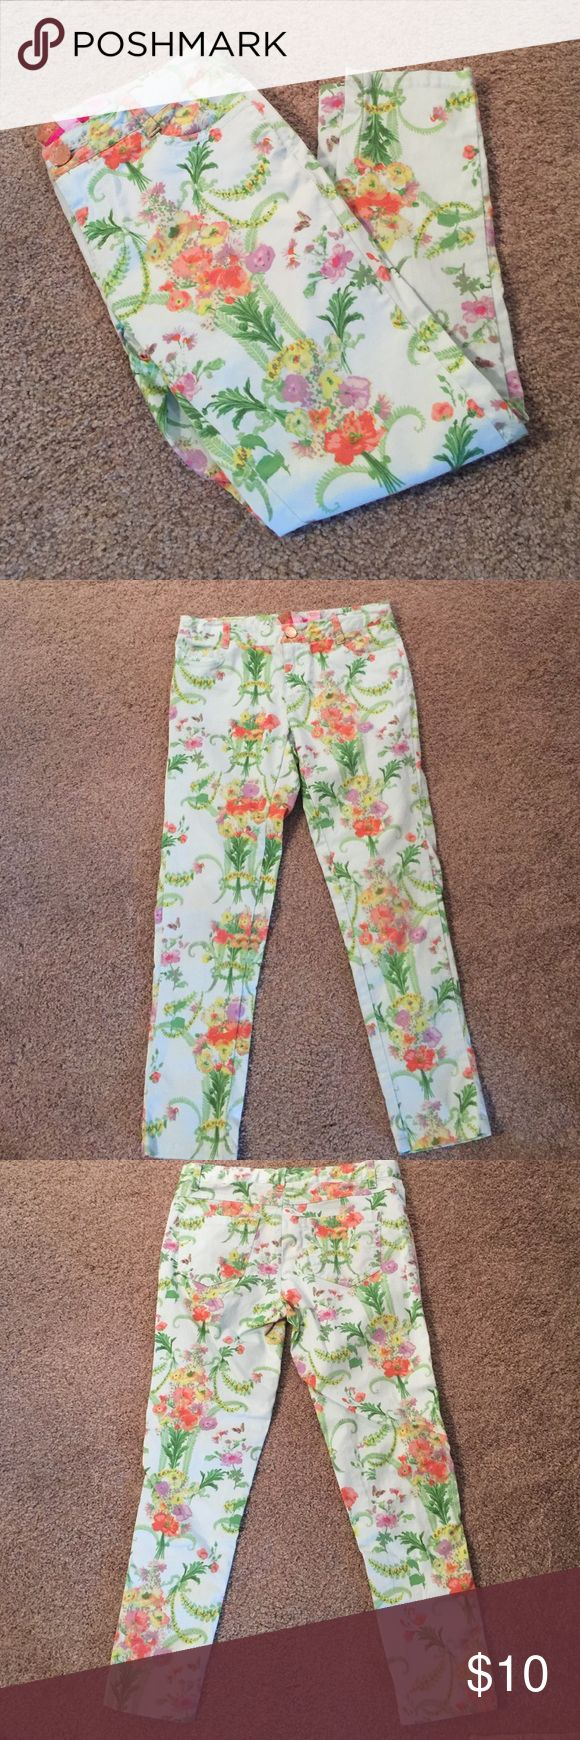 Baker straight leg pants Baker by Ted Baker straight leg floral pants. Size 8 with adjustable waist. Only worn a couple times. Baker by Ted Baker Bottoms Jeans